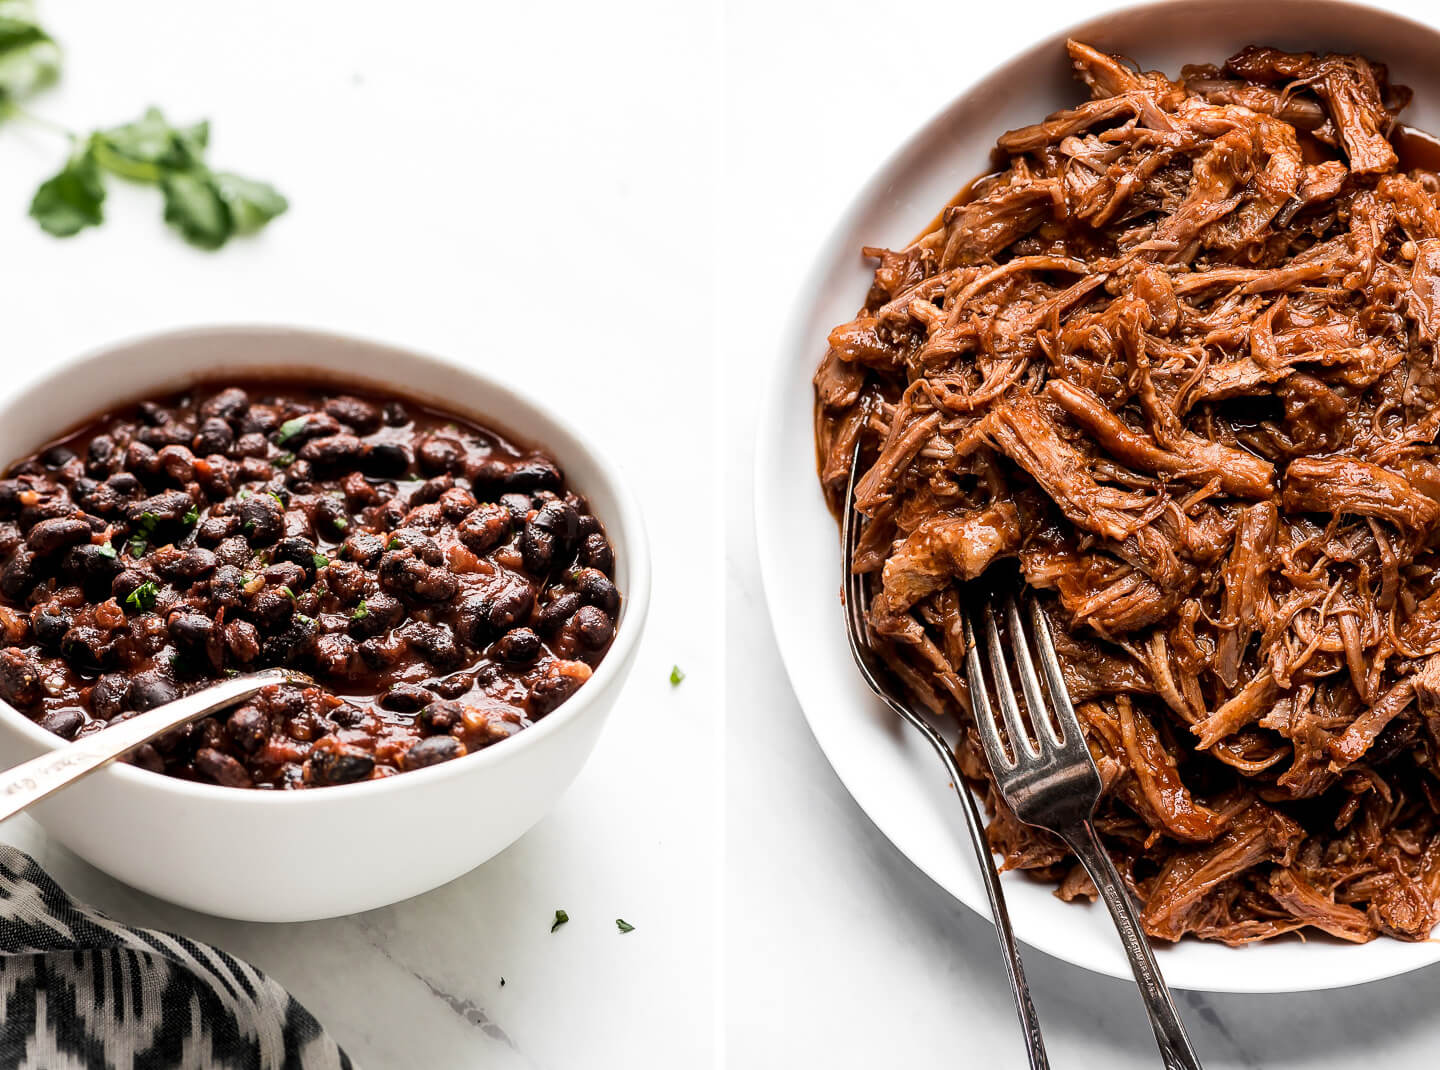 Diptych- A white bowl of seasoned black beans garnished with chopped cilantro; a large bowl of shredded sweet pork with two forks in the side.